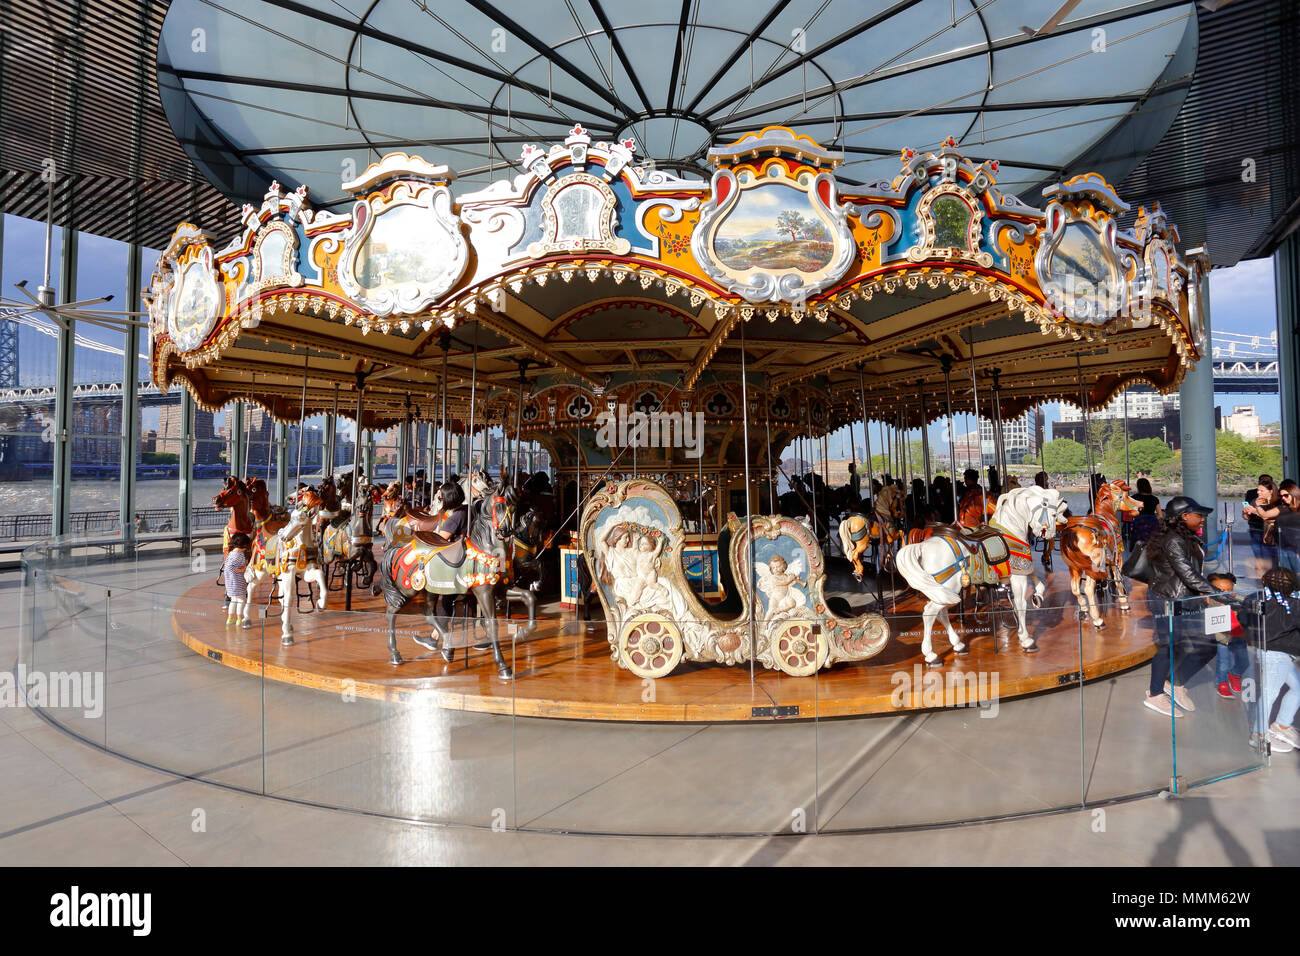 Jane's Carousel at Brooklyn Bridge Park - Stock Image